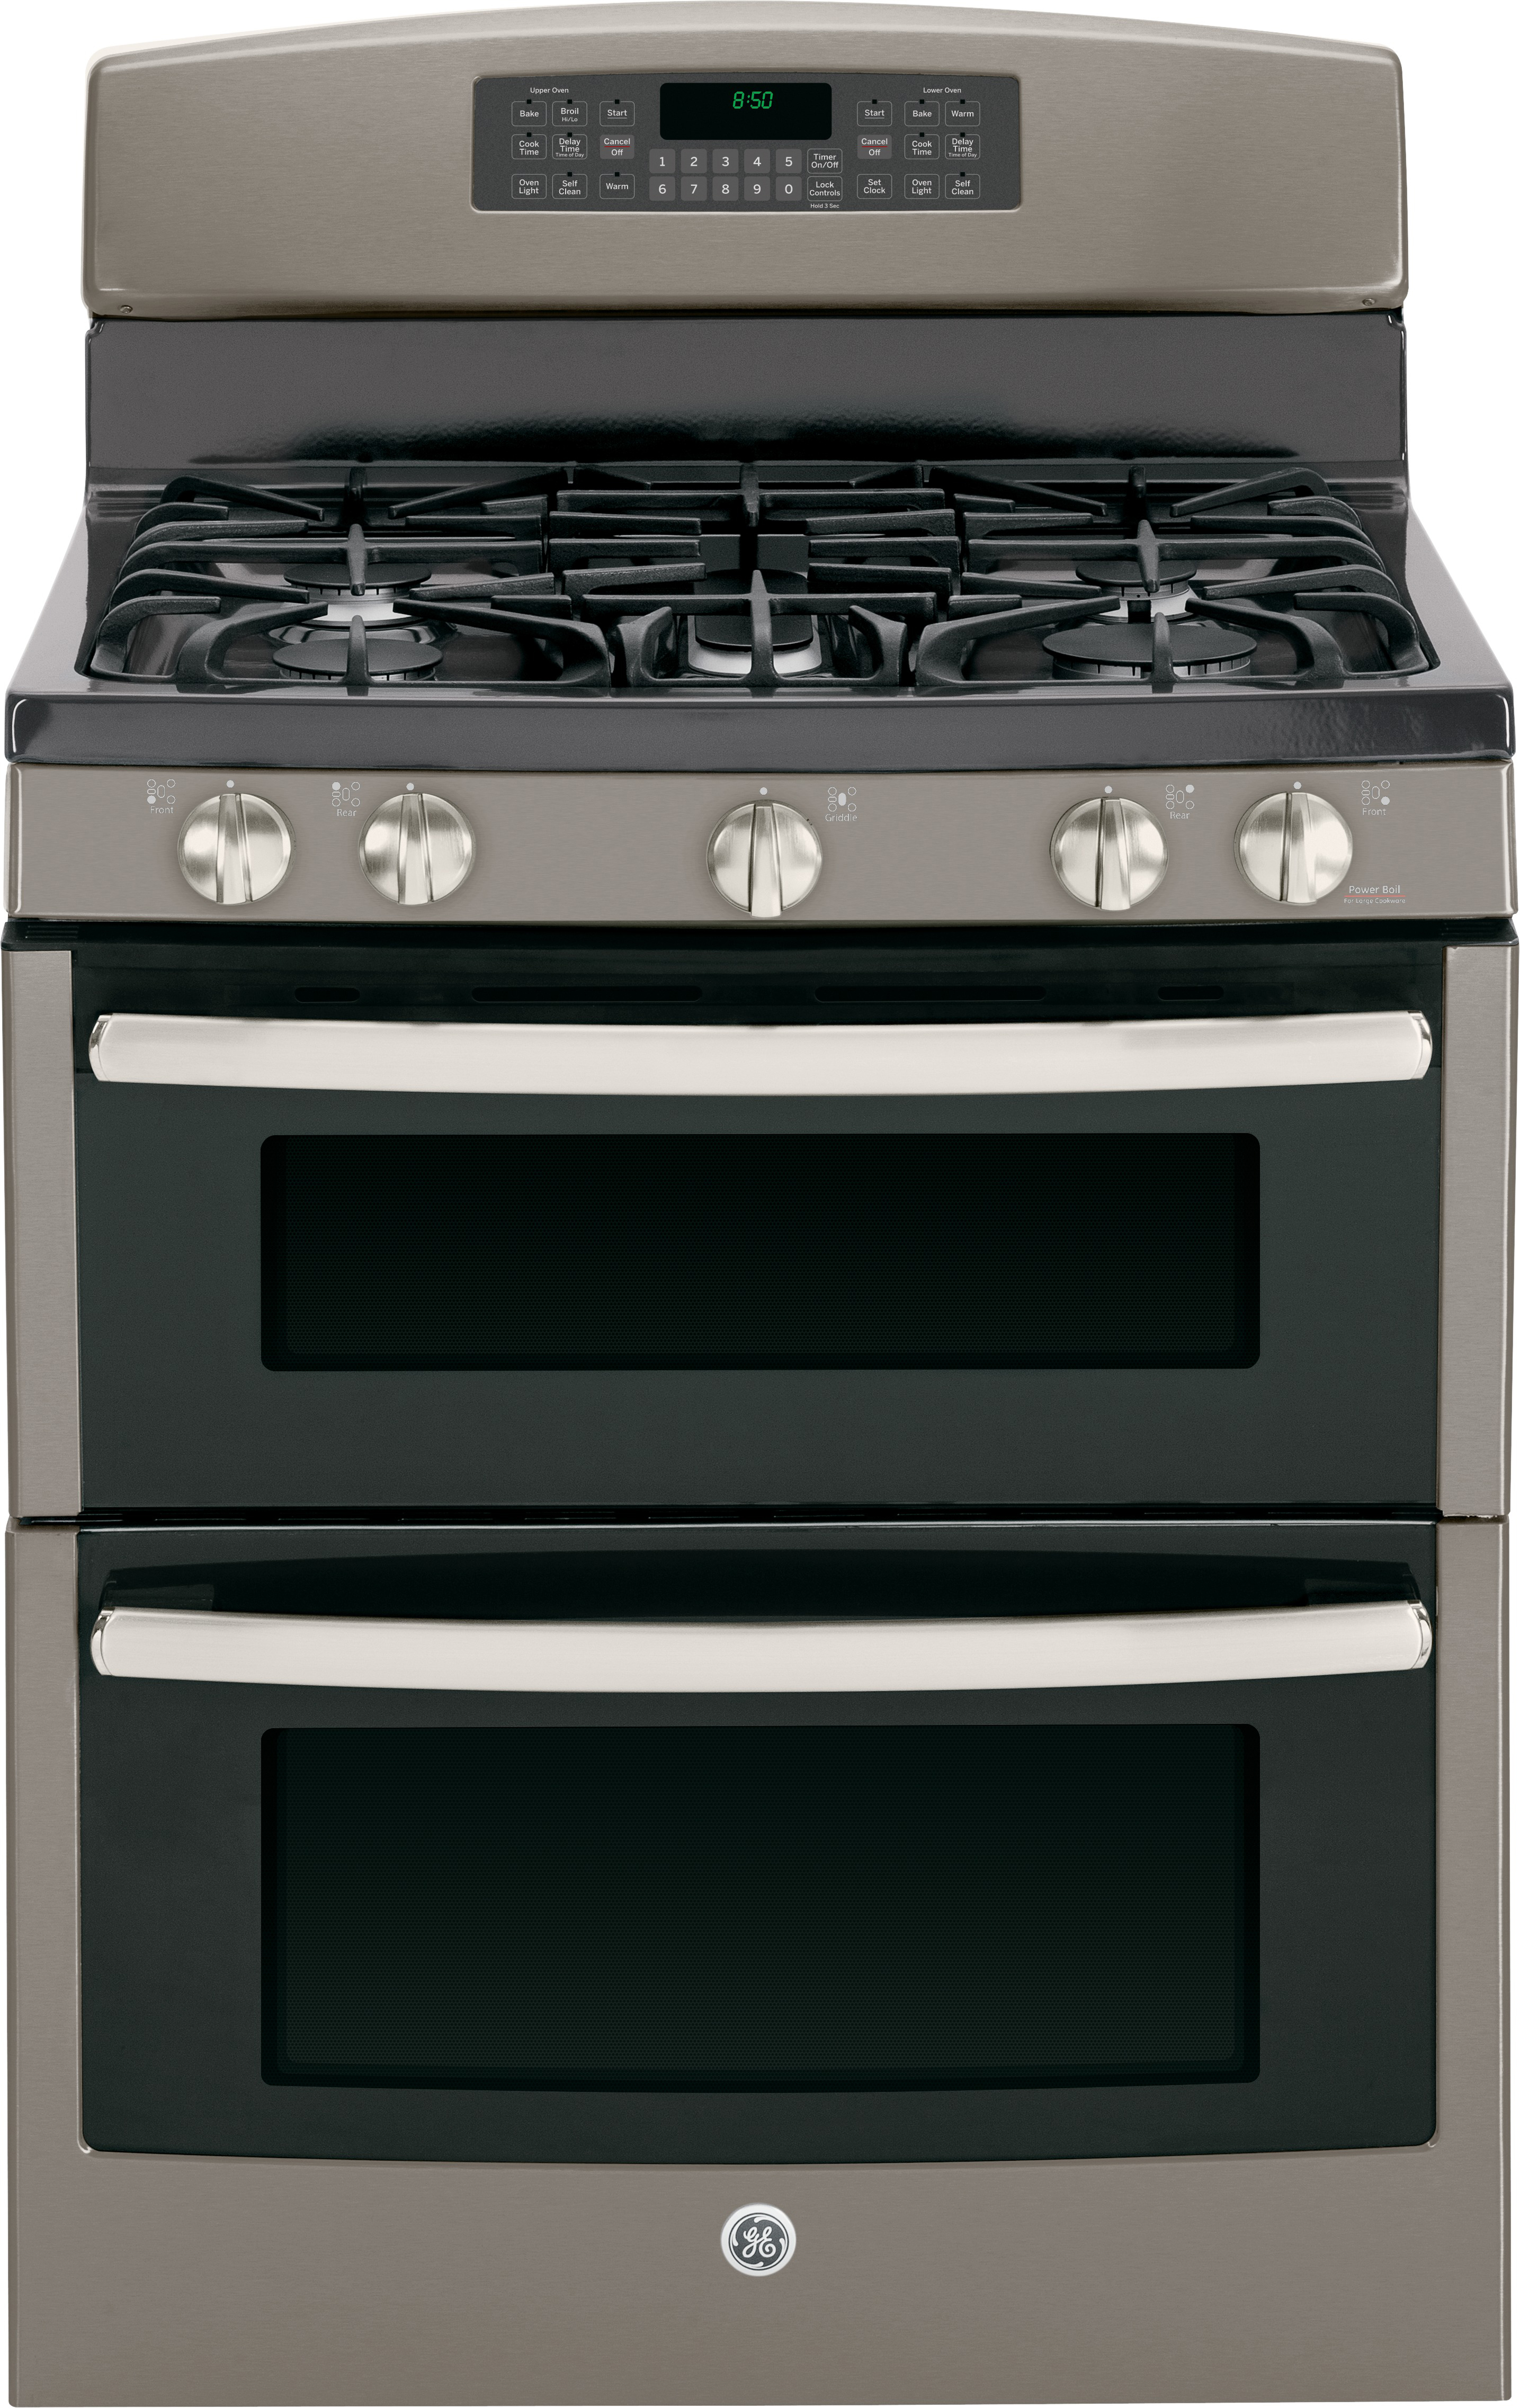 Sleek And Chic Ge Expands Popular Slate Finish To More